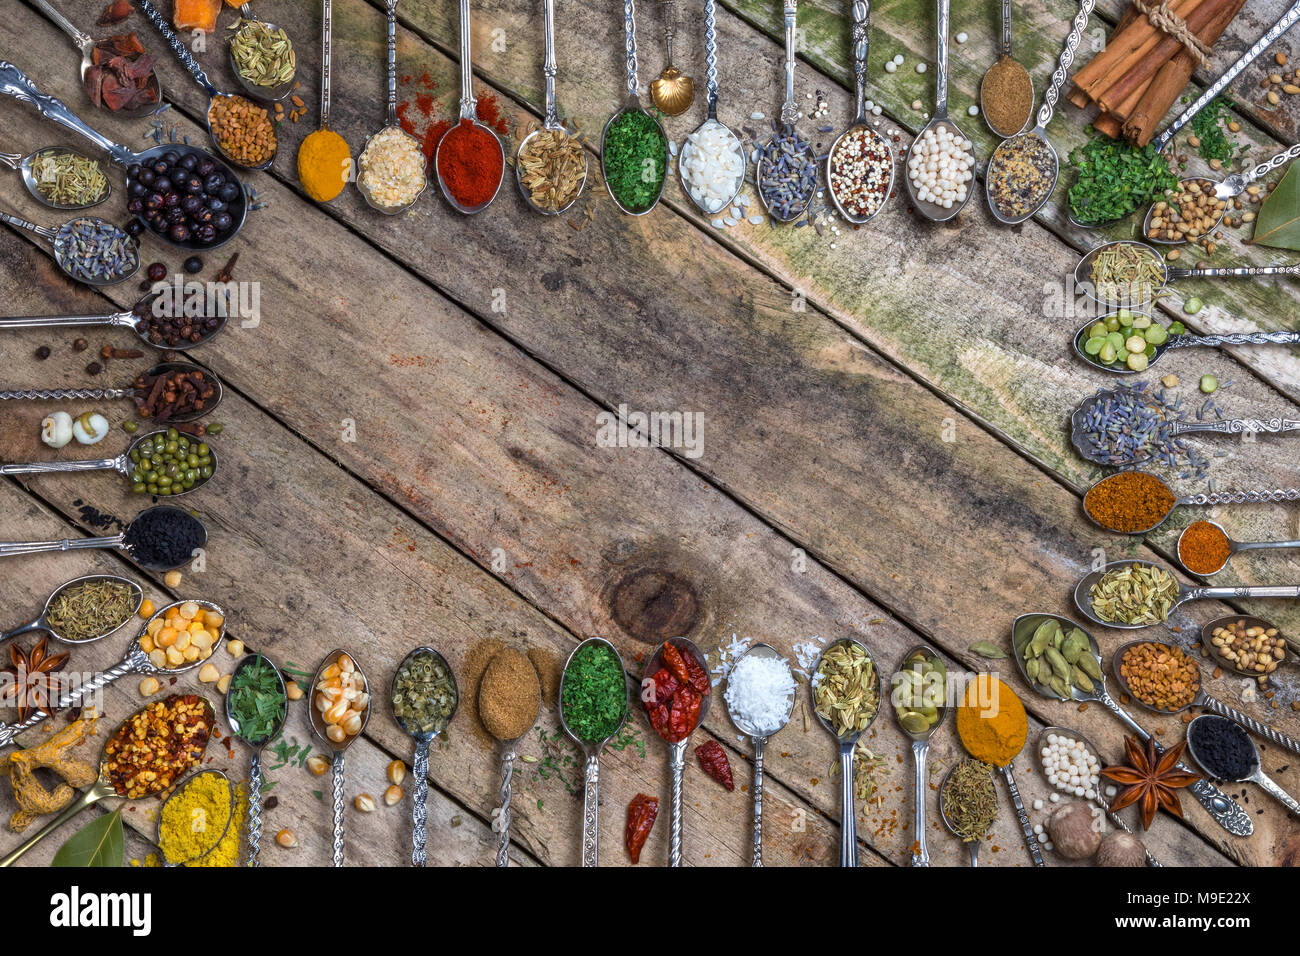 Herbs and Spices - with space for text - Menu or Recipe. - Stock Image